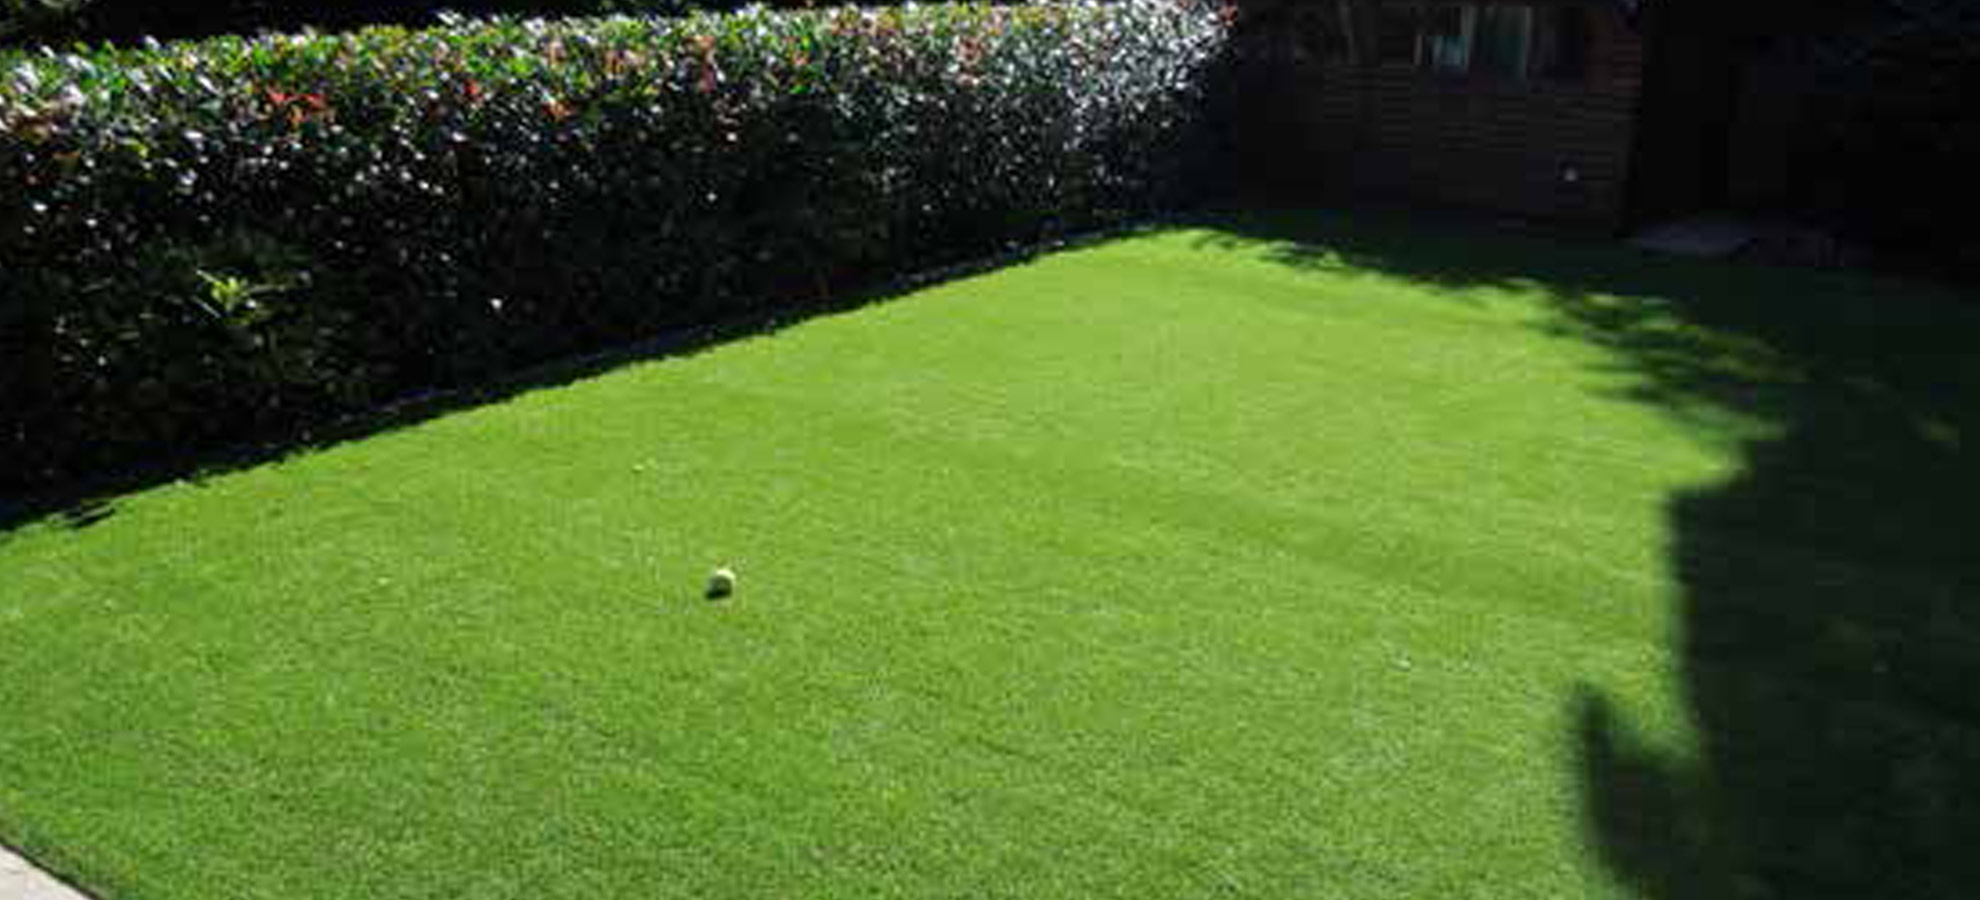 carpet-fit-wales-artificial-grass-great-value-improving-your-garden-aberdare-summer artificial grass